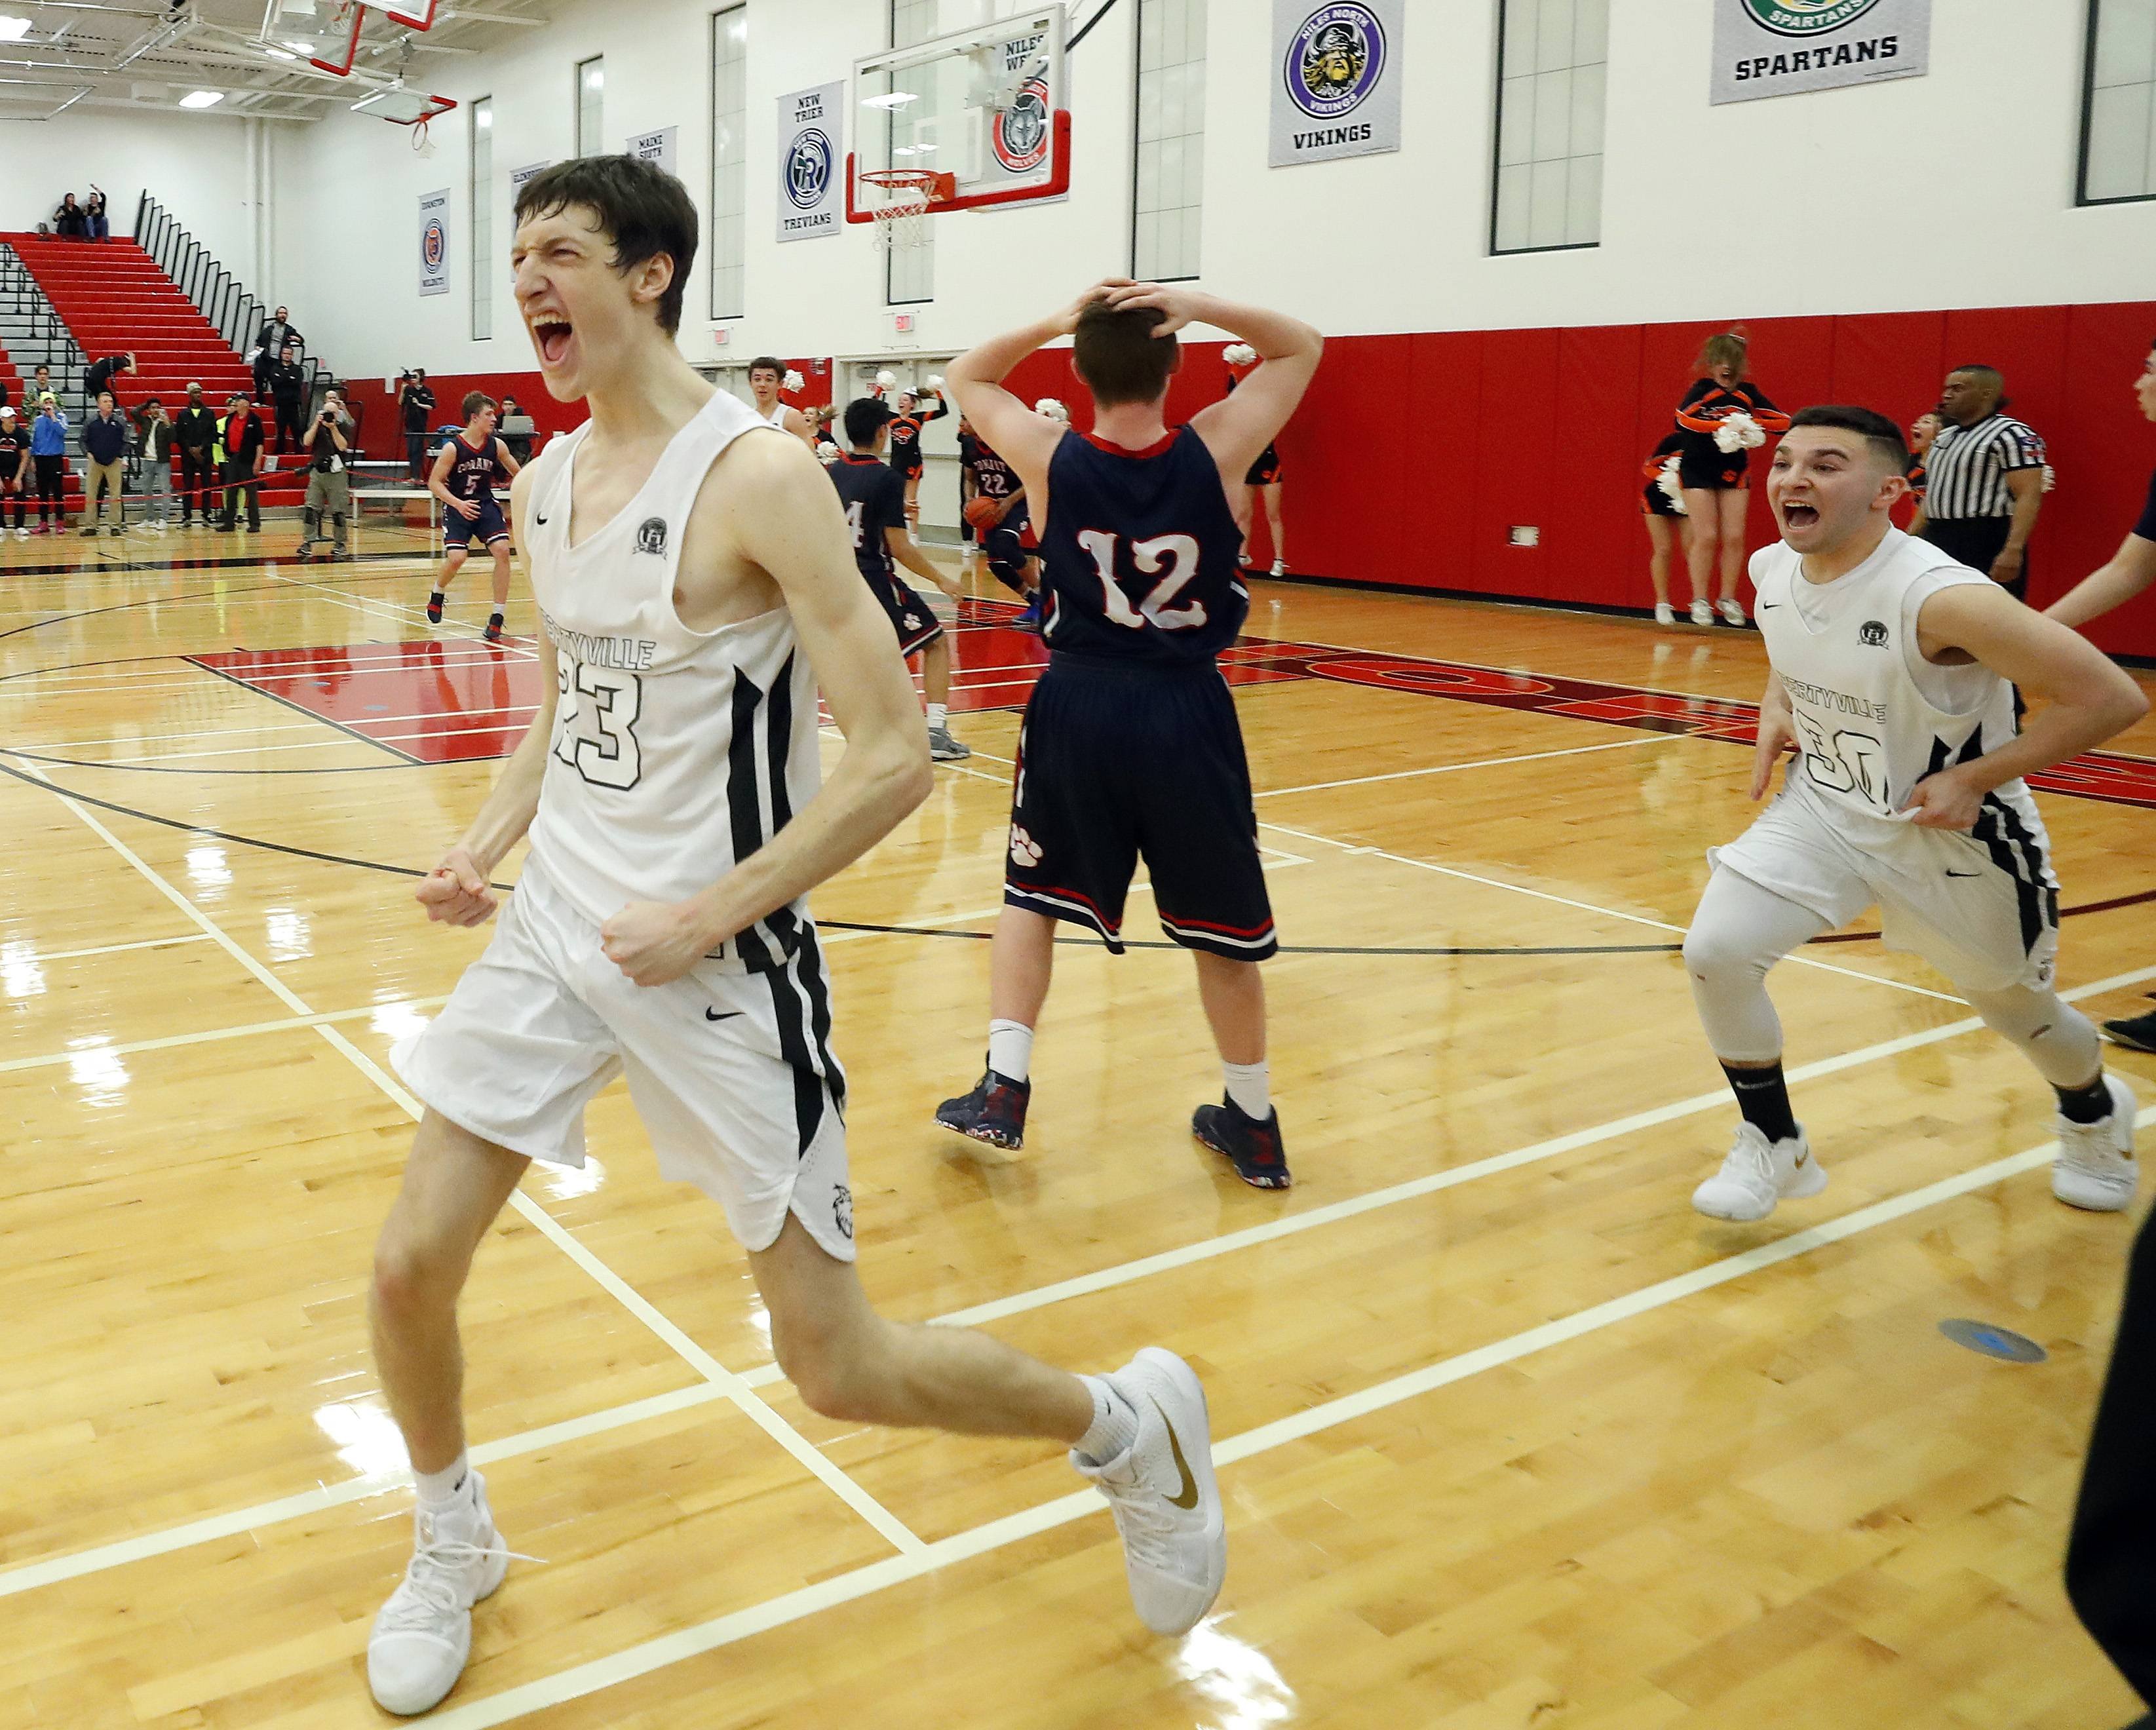 Libertyville's Drew Peterson, left, reacts after hitting a buzzer beater to finish a 59-56 win over Conant in Class 4A regional final play Friday night at Deerfield High School.